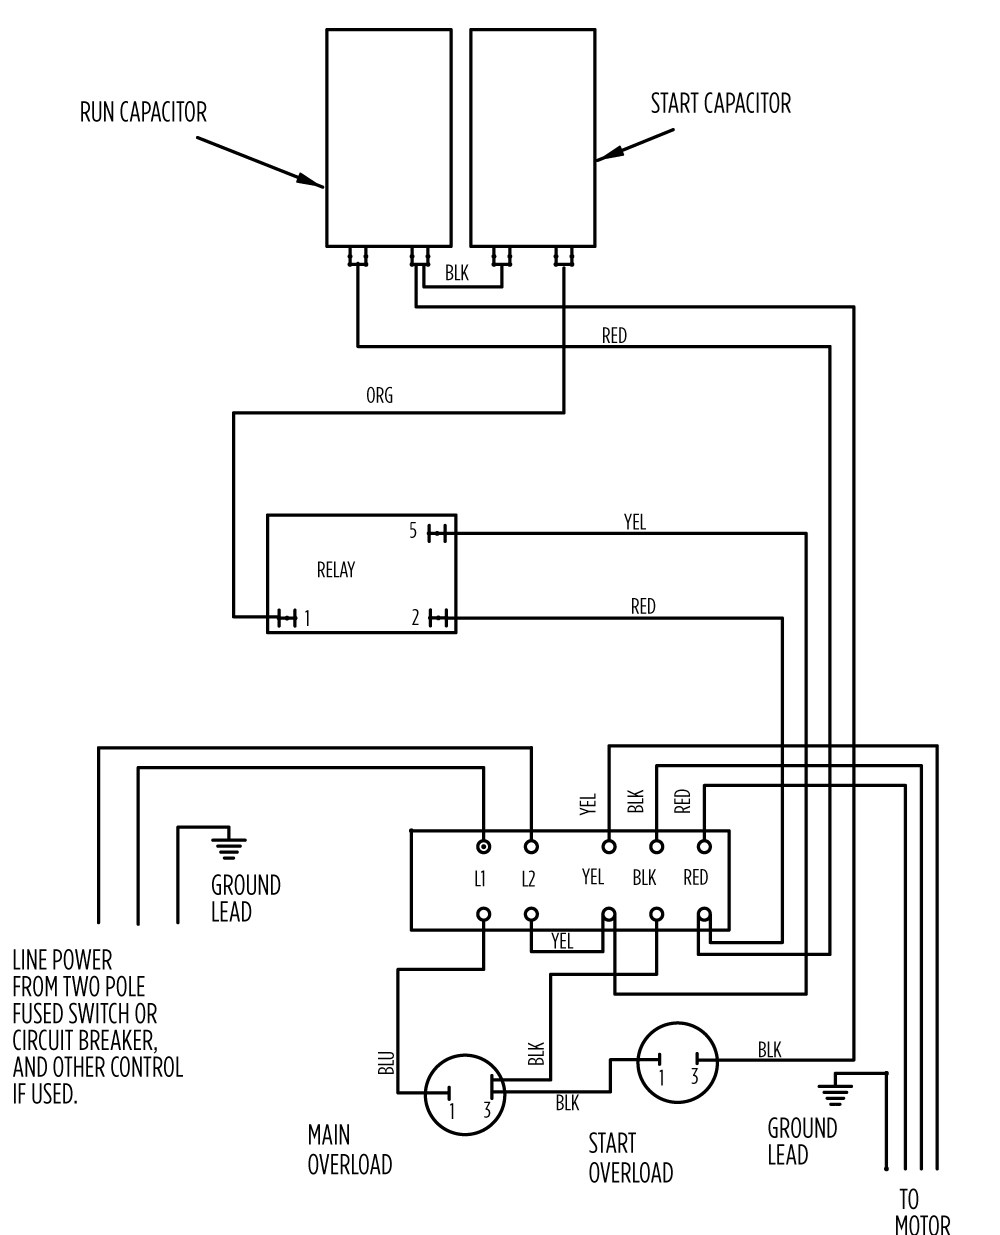 pump motor wiring diagrams lincoln guide about wiring diagram lincoln electric motor wiring diagram lincoln motor wiring diagram [ 1000 x 1235 Pixel ]